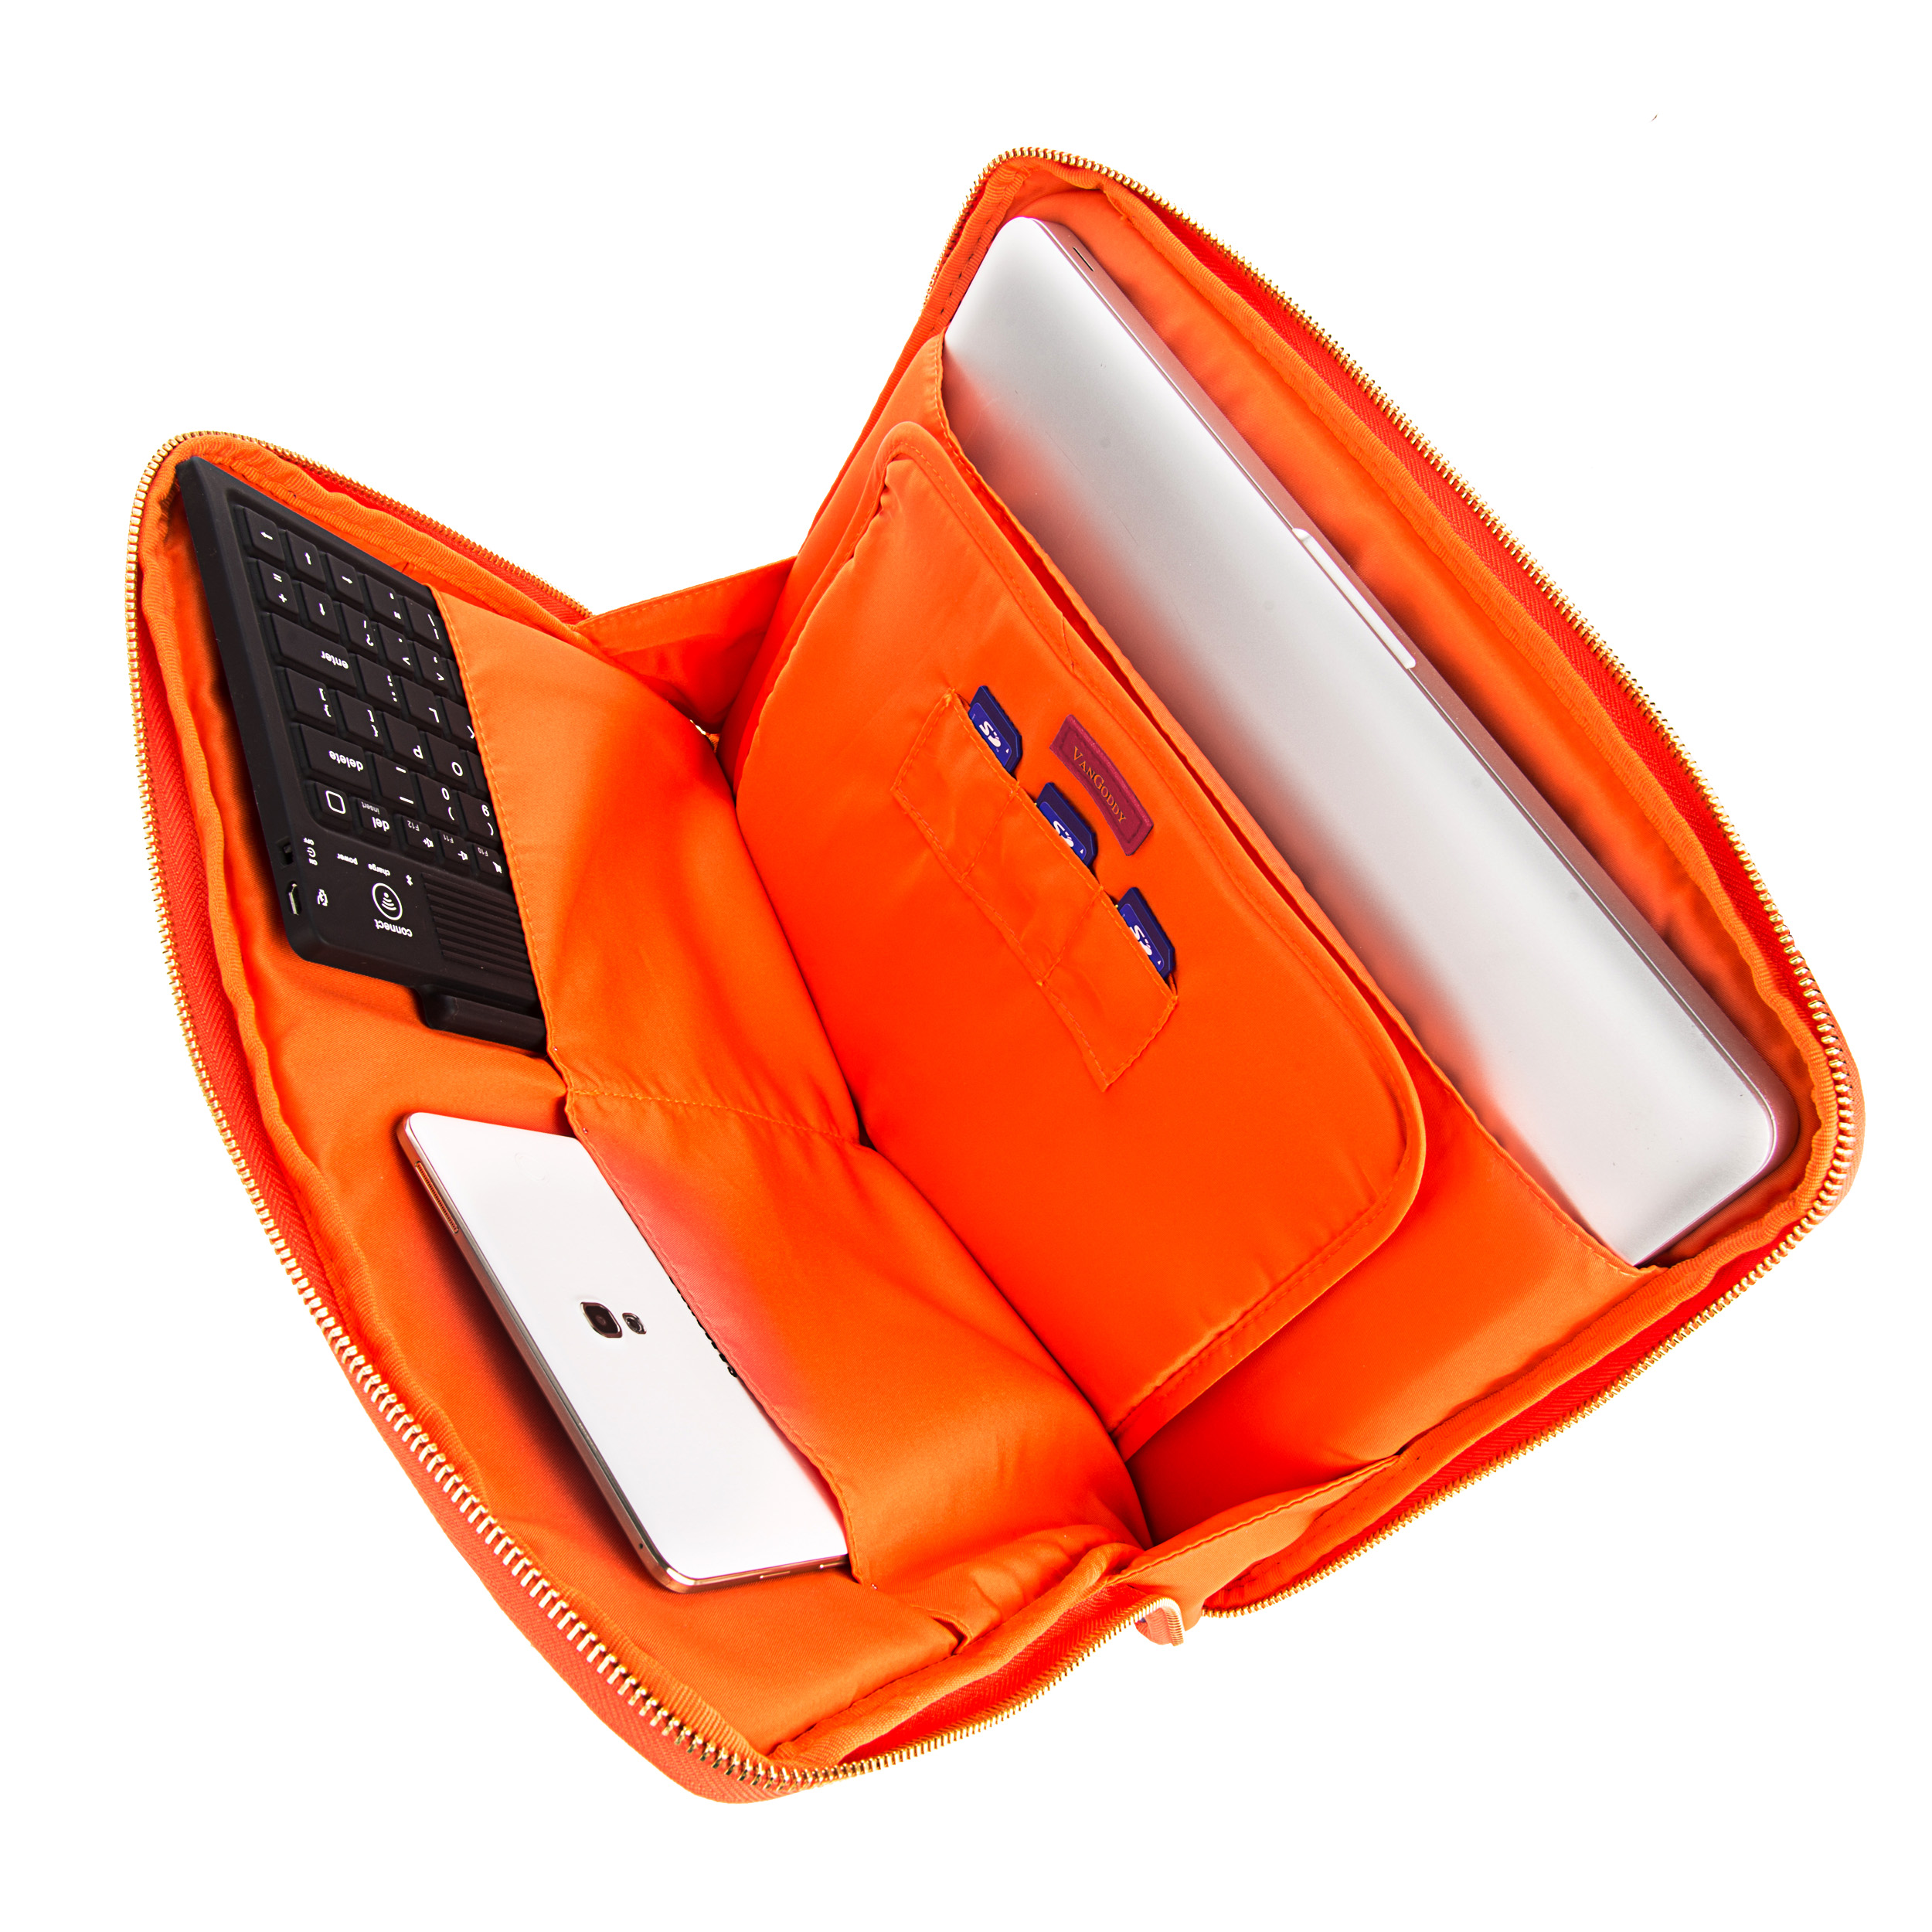 "Irista 15"" Laptop Sleeve (Magenta/Orange)"